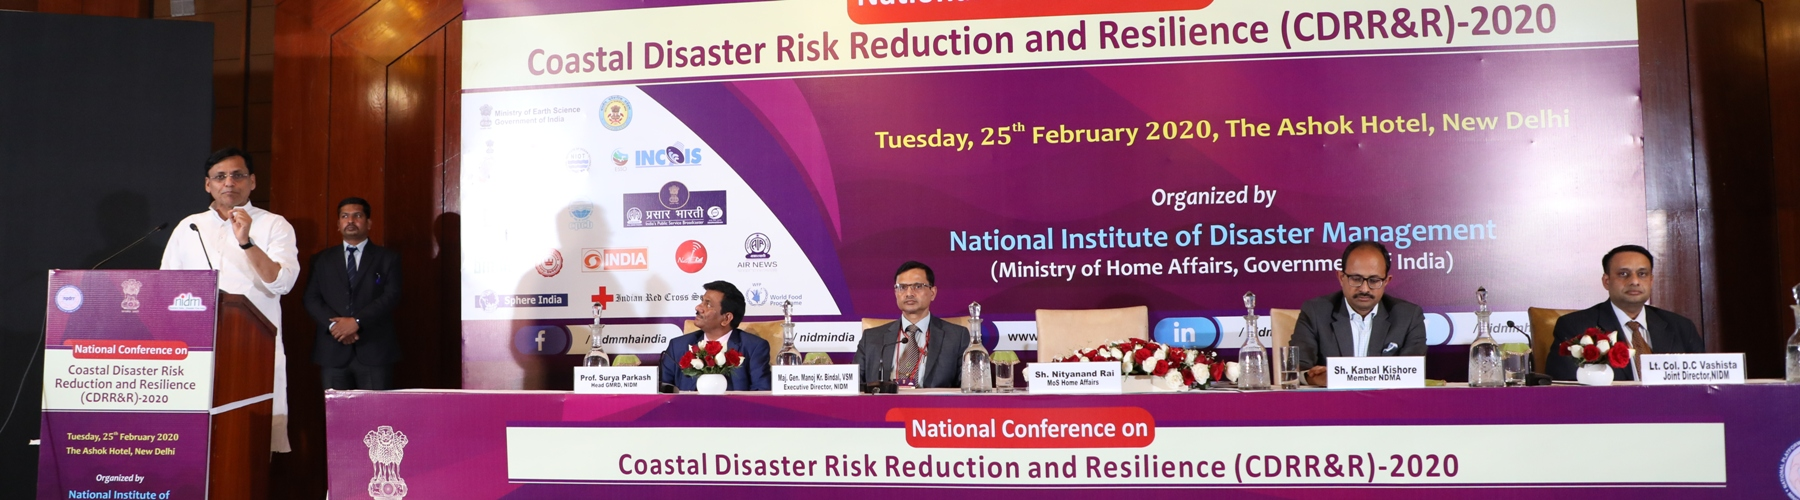 Union Minister of State for Home Affairs, Shri Nityanand Rai presiding over the valedictory session of the 1st National Conference on Coastal Disaster Risk Reduction and Resilience (CDRR&R)  2020, in New Delhi, on February 25, 2020.